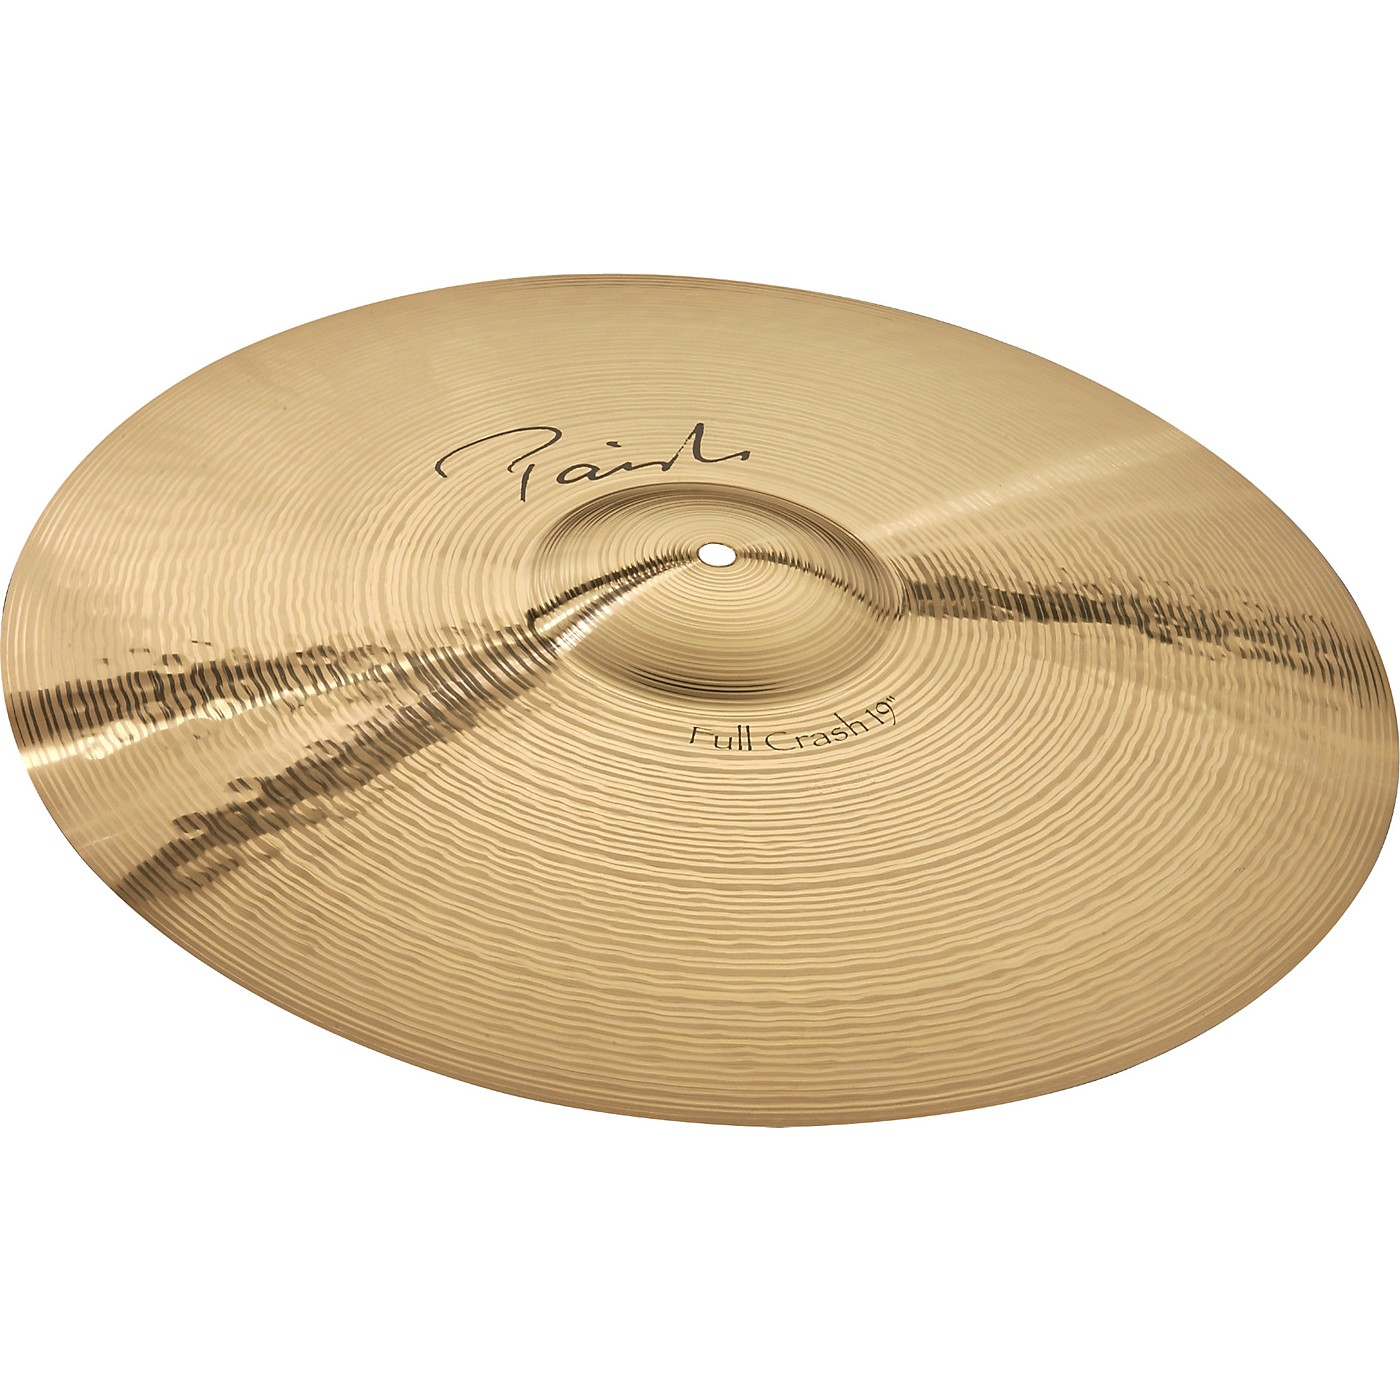 Paiste Signature Full Crash Cymbal thumbnail